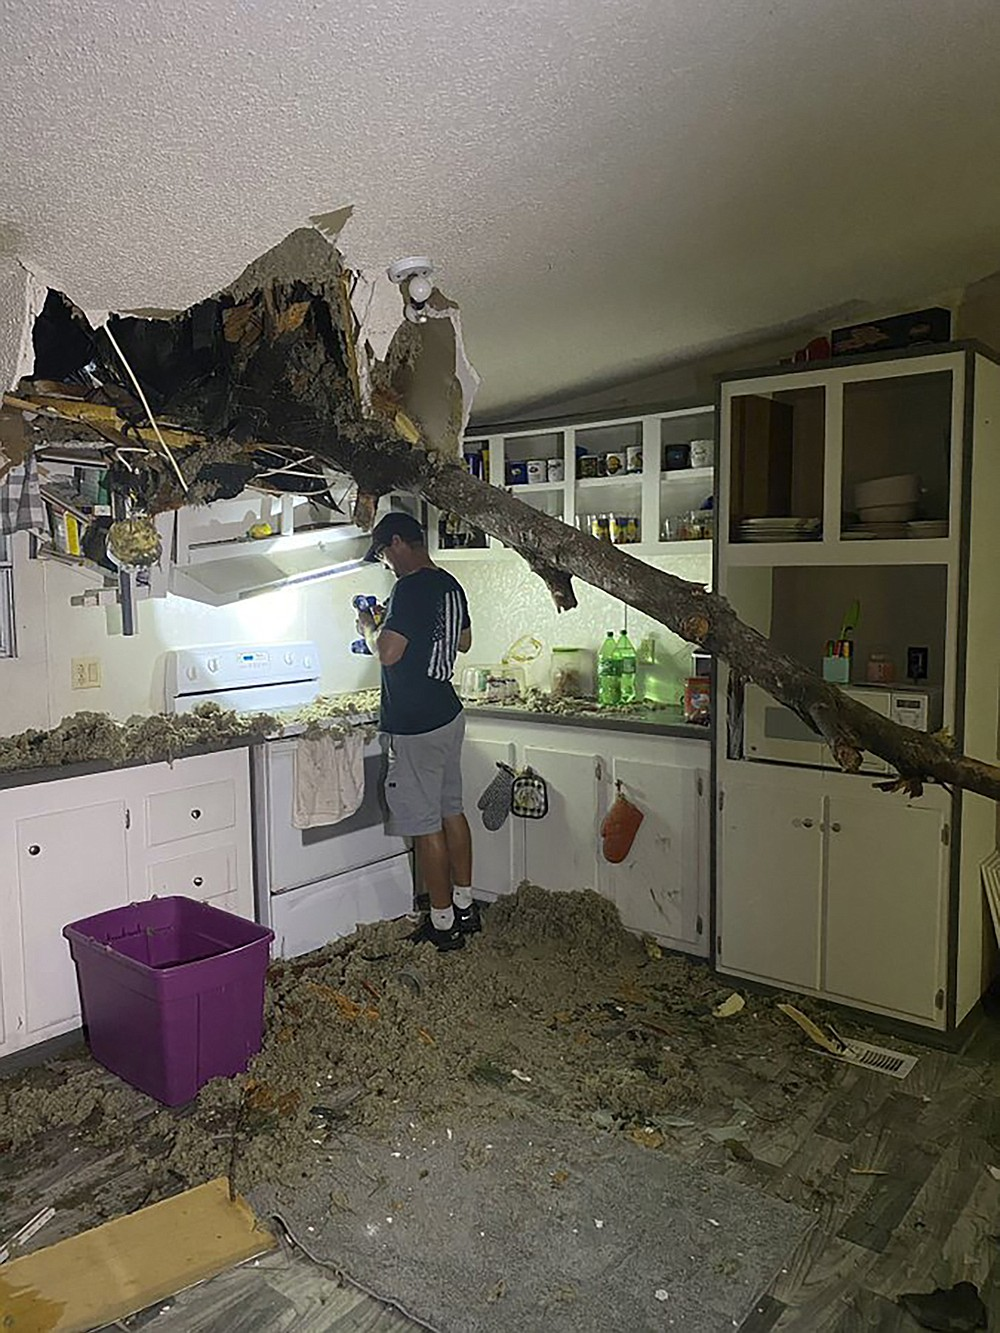 ADDS MAN IN PHOTO IS THE HOMEOWNER - A tree limb juts through the ceiling of a home as the homeowner turns on a flashlight to begin cleaning up the damage left by Hurricane Sally on Thursday, Sept. 17, 2020, in Guyton, Ga.   (WTOC-TV via AP)